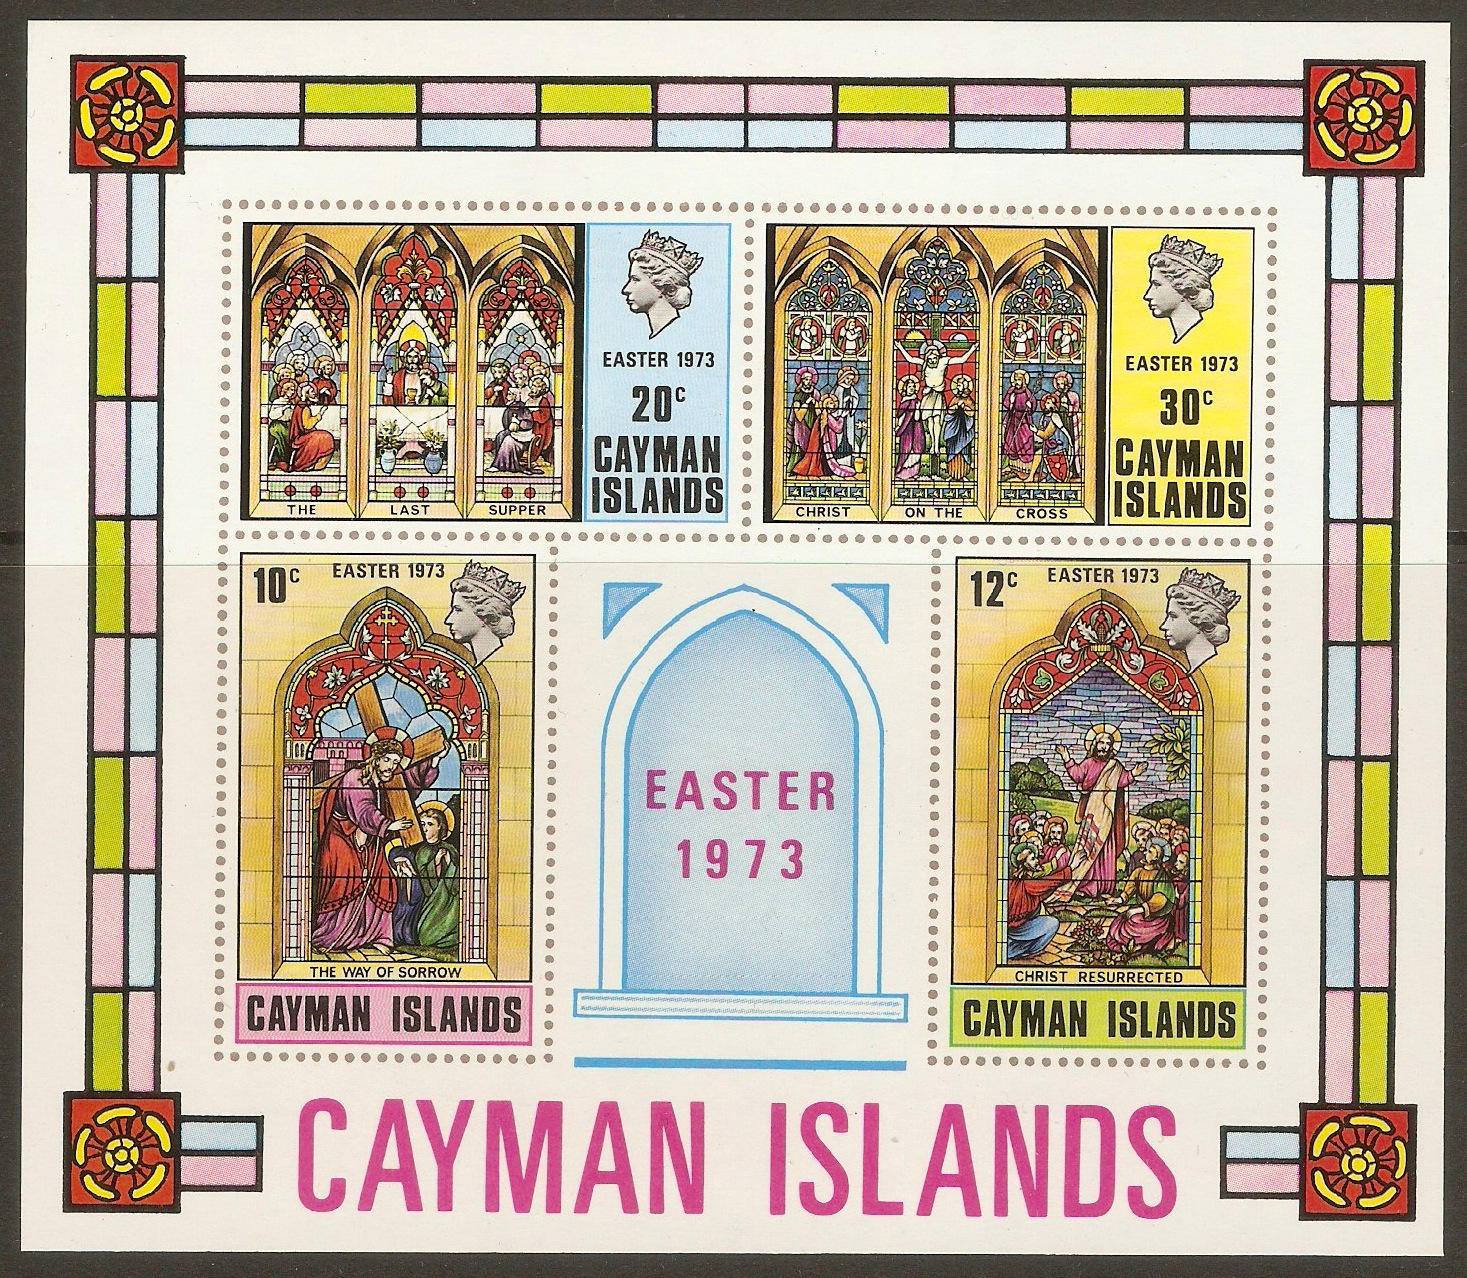 Cayman Islands 1973 Easter Stained Glass sheet. SGMS328.